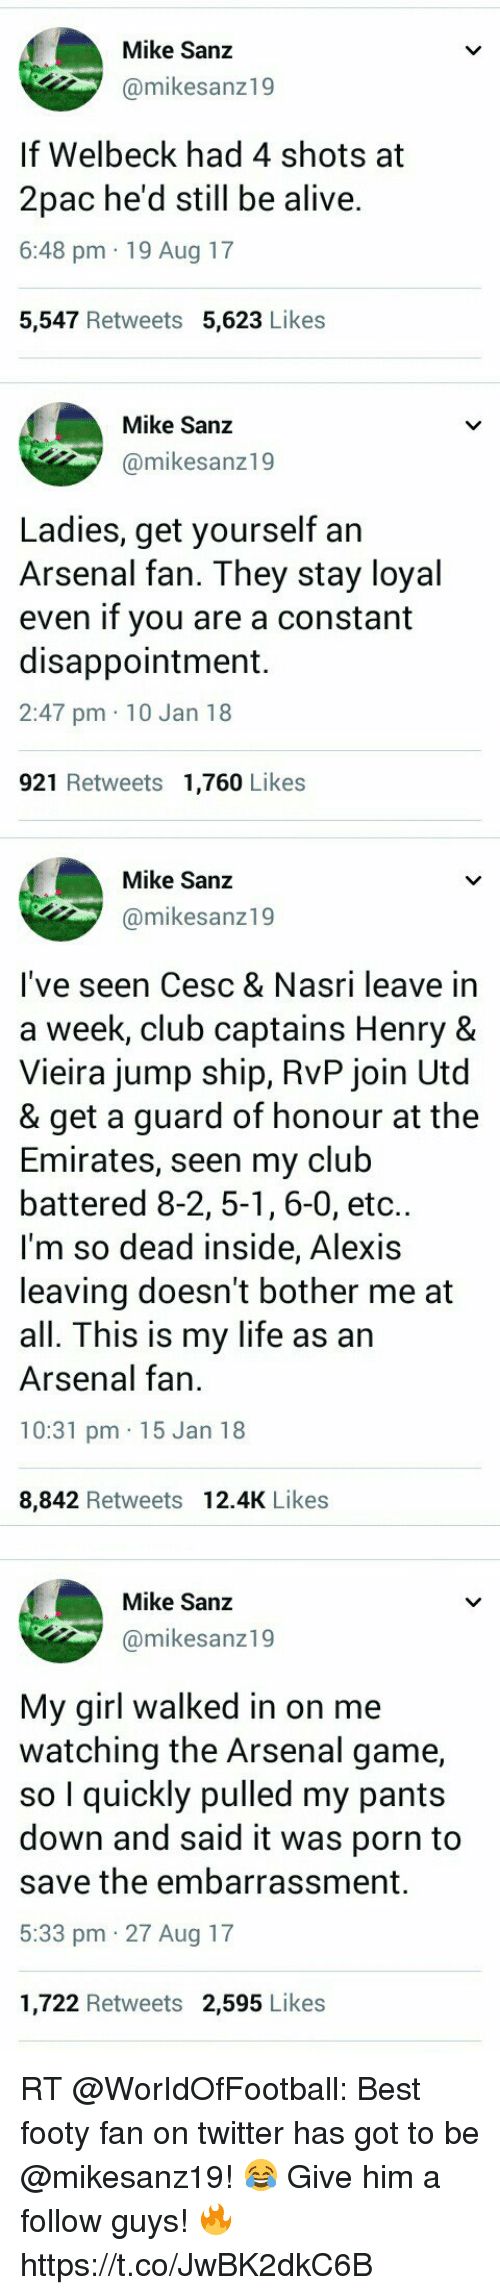 Alive, Arsenal, and Club: Mike Sanz  @mikesanz19  If Welbeck had 4 shots at  2pac he'd still be alive.  6:48 pm 19 Aug 17  5,547 Retweets 5,623 Likes   Mike Sanz  @mikesanz19  Ladies, get yourself an  Arsenal fan. They stay loyal  even if you are a constant  disappointment.  2:47 pm 10 Jan 18  921 Retweets 1,760 Likes   Mike Sanz  @mikesanz19  l've seen Cesc & Nasri leave in  a week, club captains Henry &  Vieira jump ship, RvP join Utd  & get a guard of honour at the  Emirates, seen my club  battered 8-2, 5-1, 6-0, etc..  l'm so dead inside, Alexis  leaving doesn't bother me at  all. This is my life as an  Arsenal fan  10:31 pm 15 Jan 18  8,842 Retweets 12.4K Likes   Mike Sanz  @mikesanz19  My girl walked in on me  watching the Arsenal game,  so I quickly pulled my pants  down and said it was porn to  save the embarrassment.  5:33 pm 27 Aug 17  1,722 Retweets 2,595 Likes RT @WorIdOfFootball: Best footy fan on twitter has got to be @mikesanz19! 😂 Give him a follow guys! 🔥 https://t.co/JwBK2dkC6B